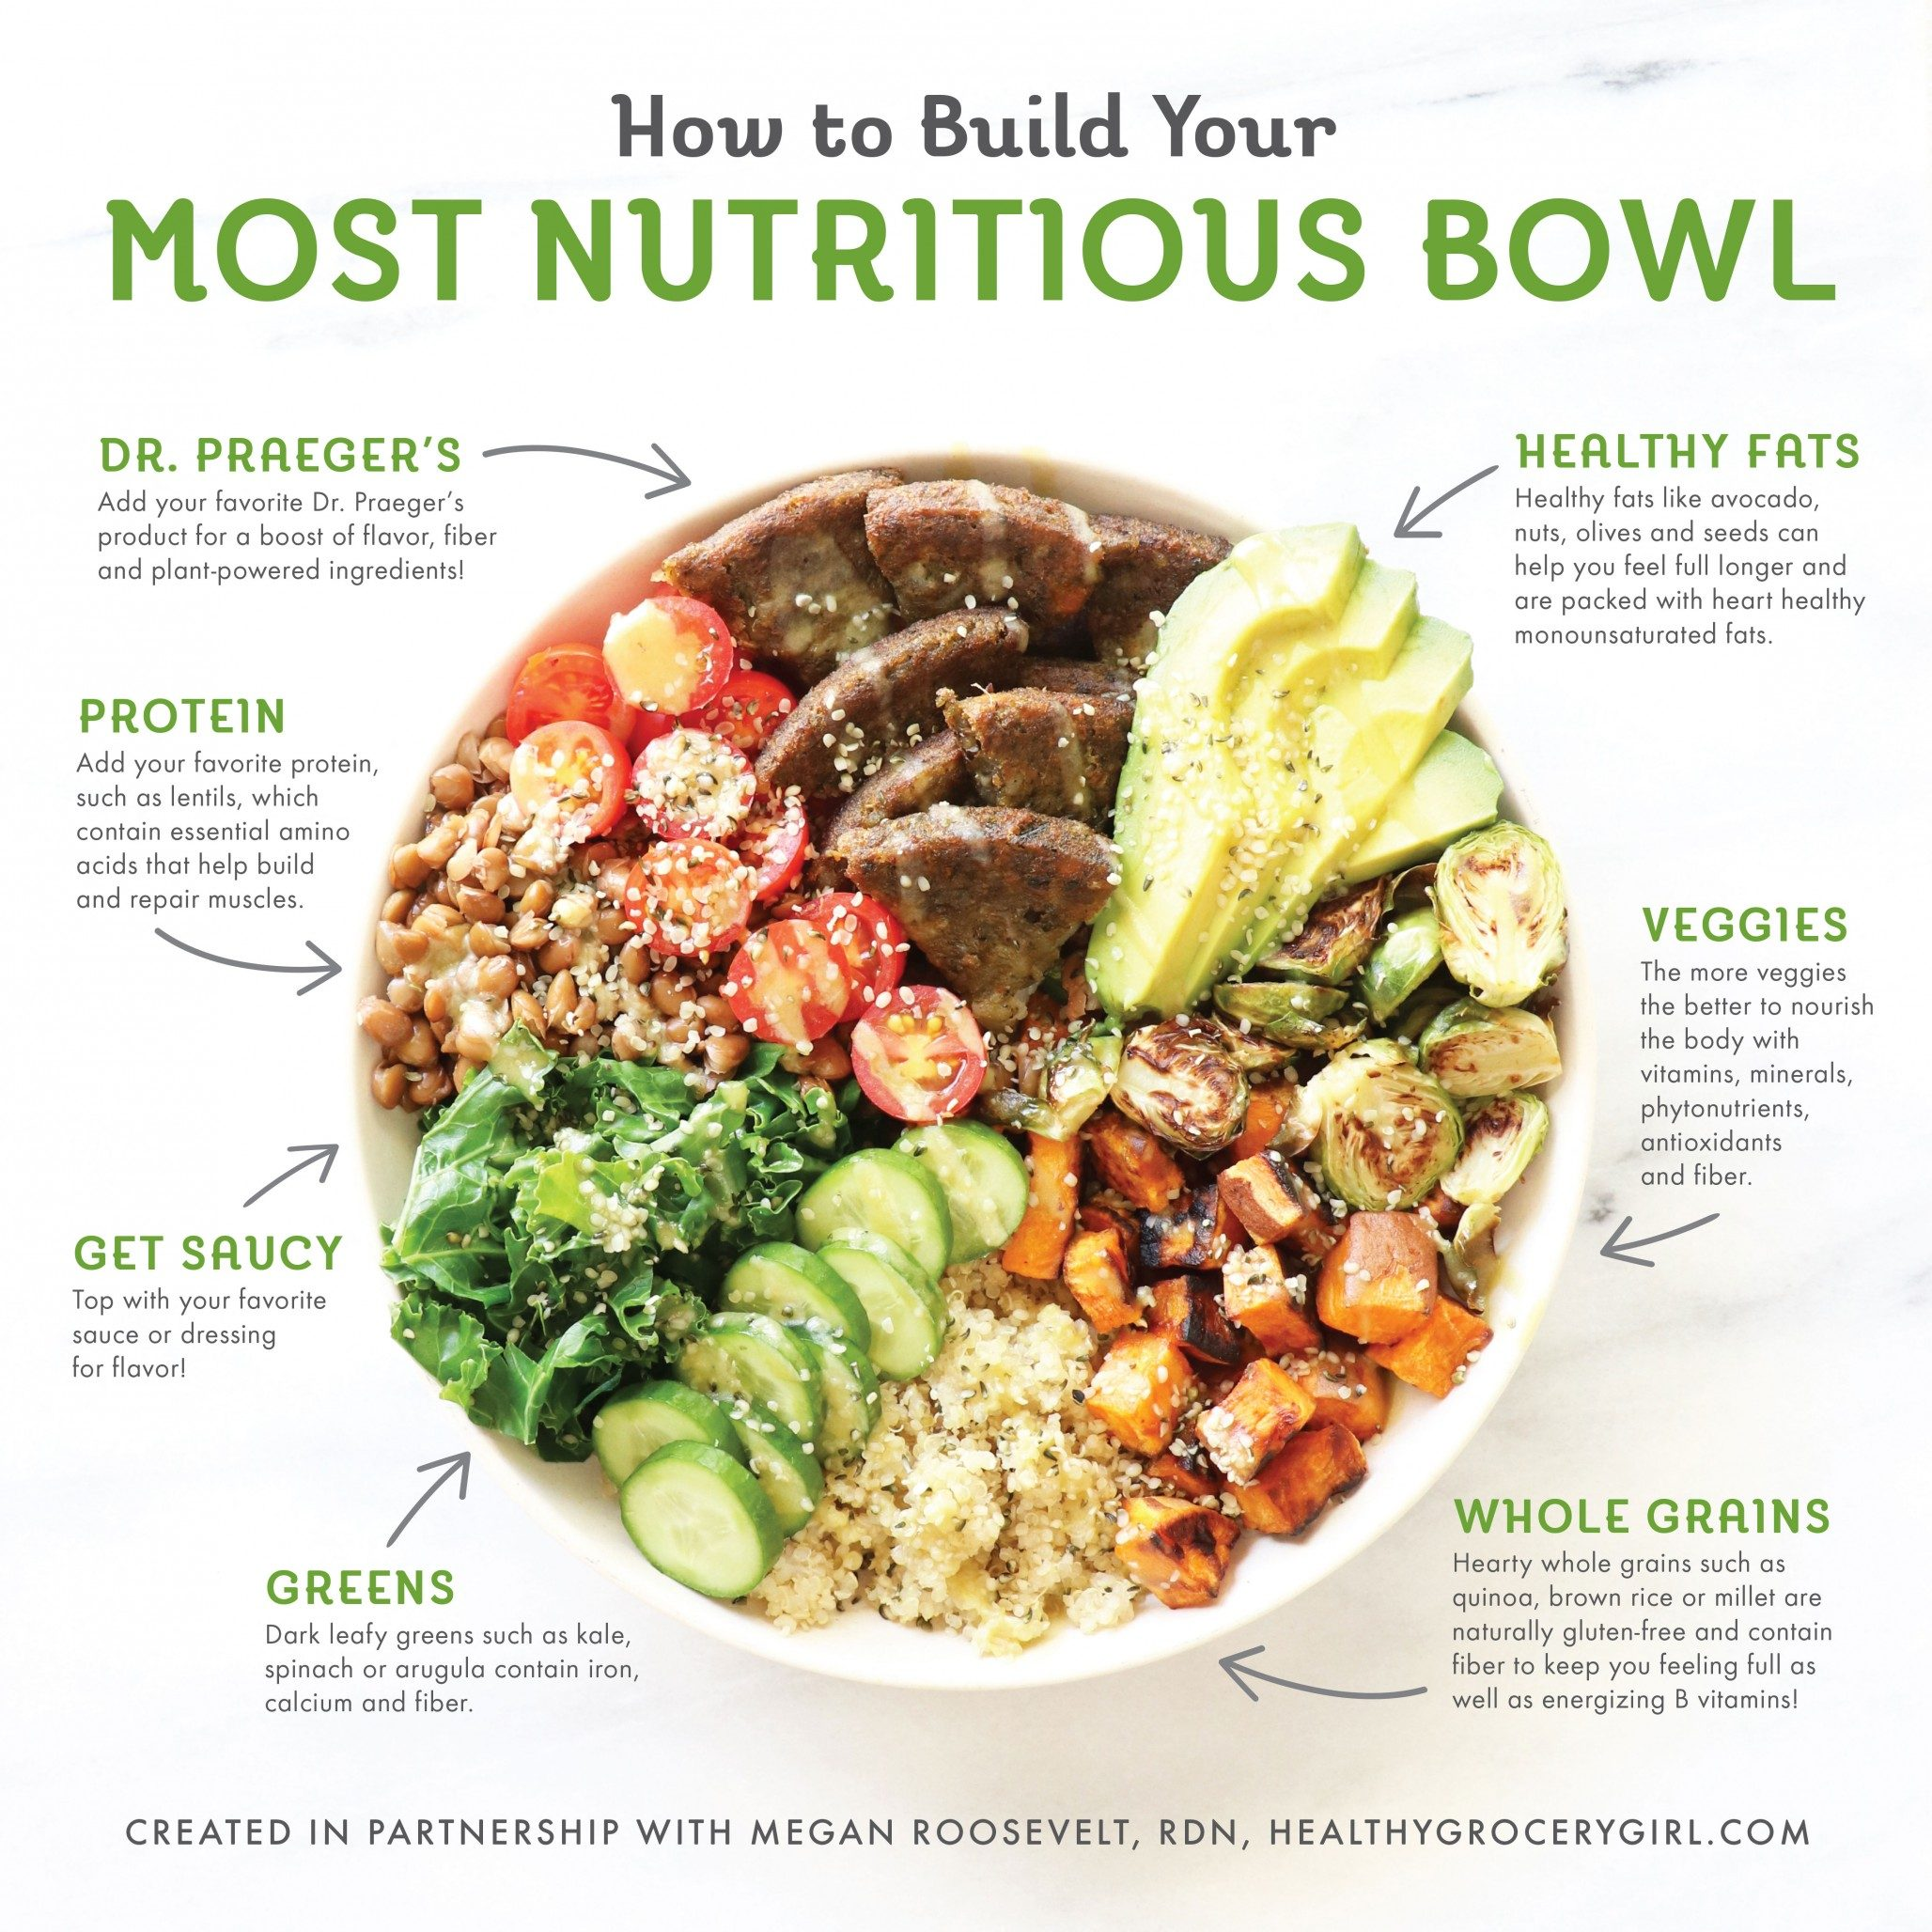 How to Build Your Bowl Boss Graphic from Dr. Praeger's